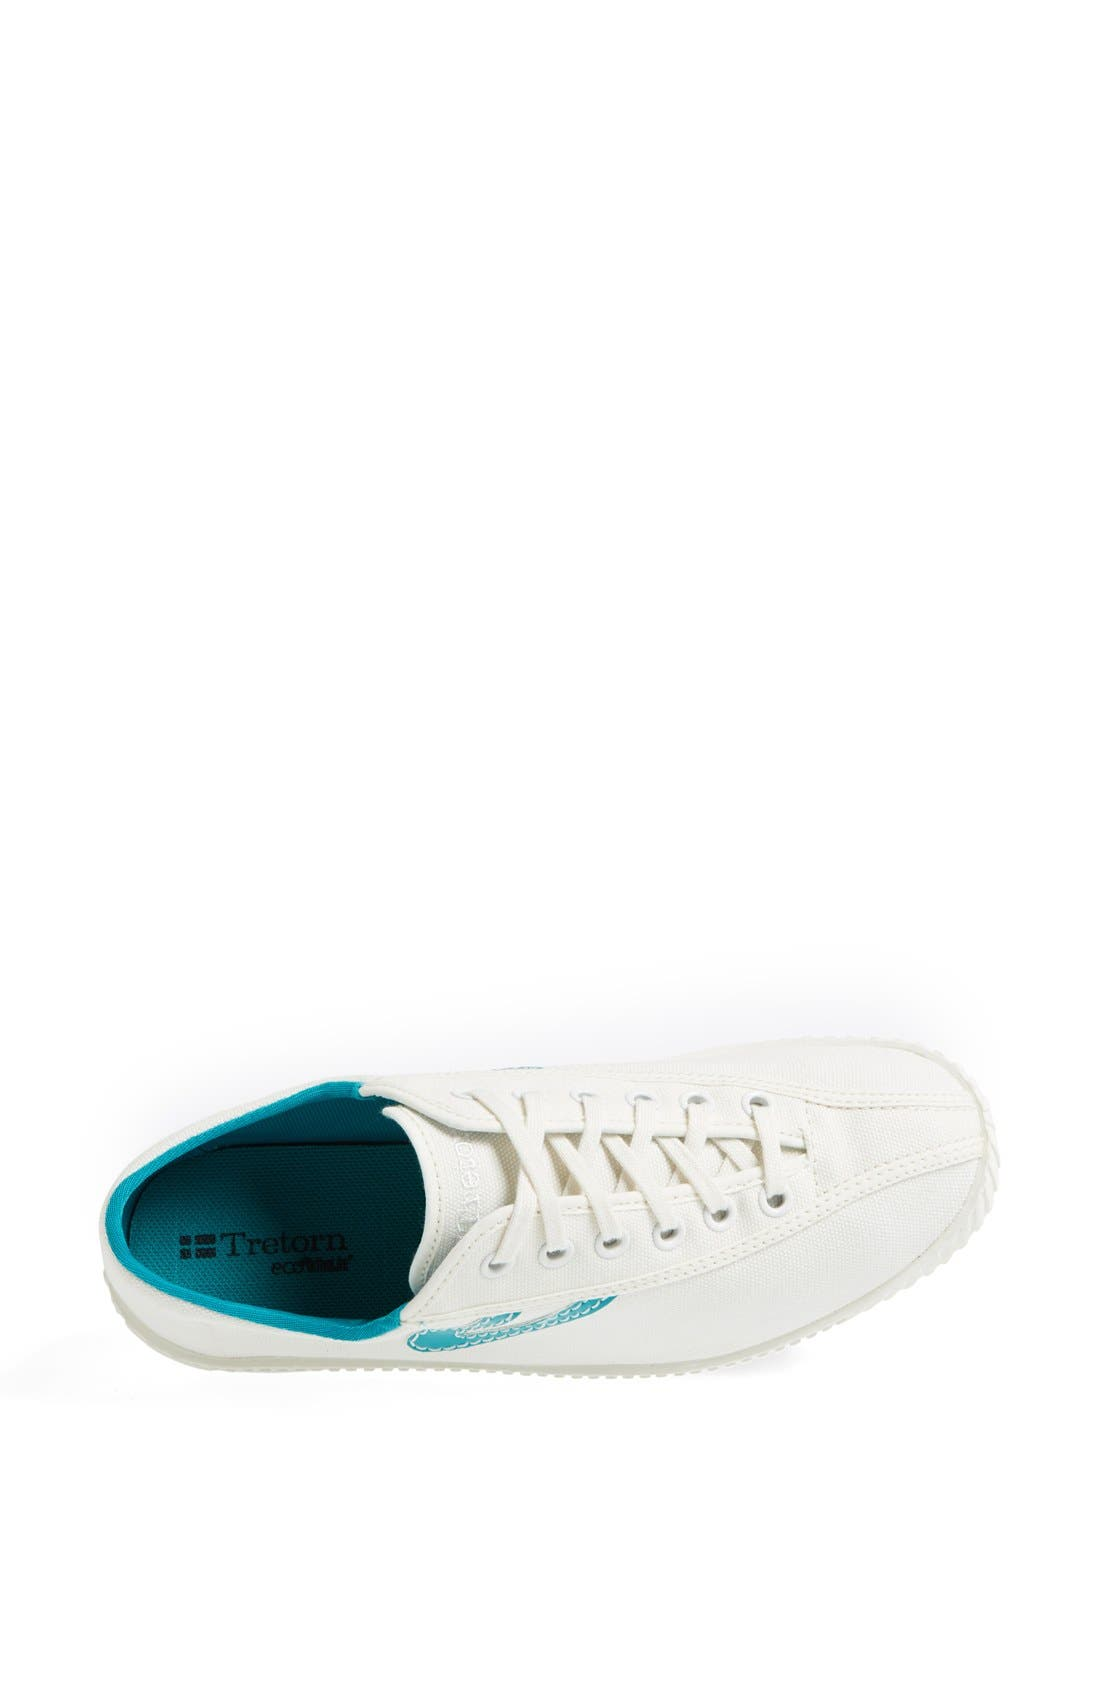 'Nylite' Sneaker,                             Alternate thumbnail 49, color,